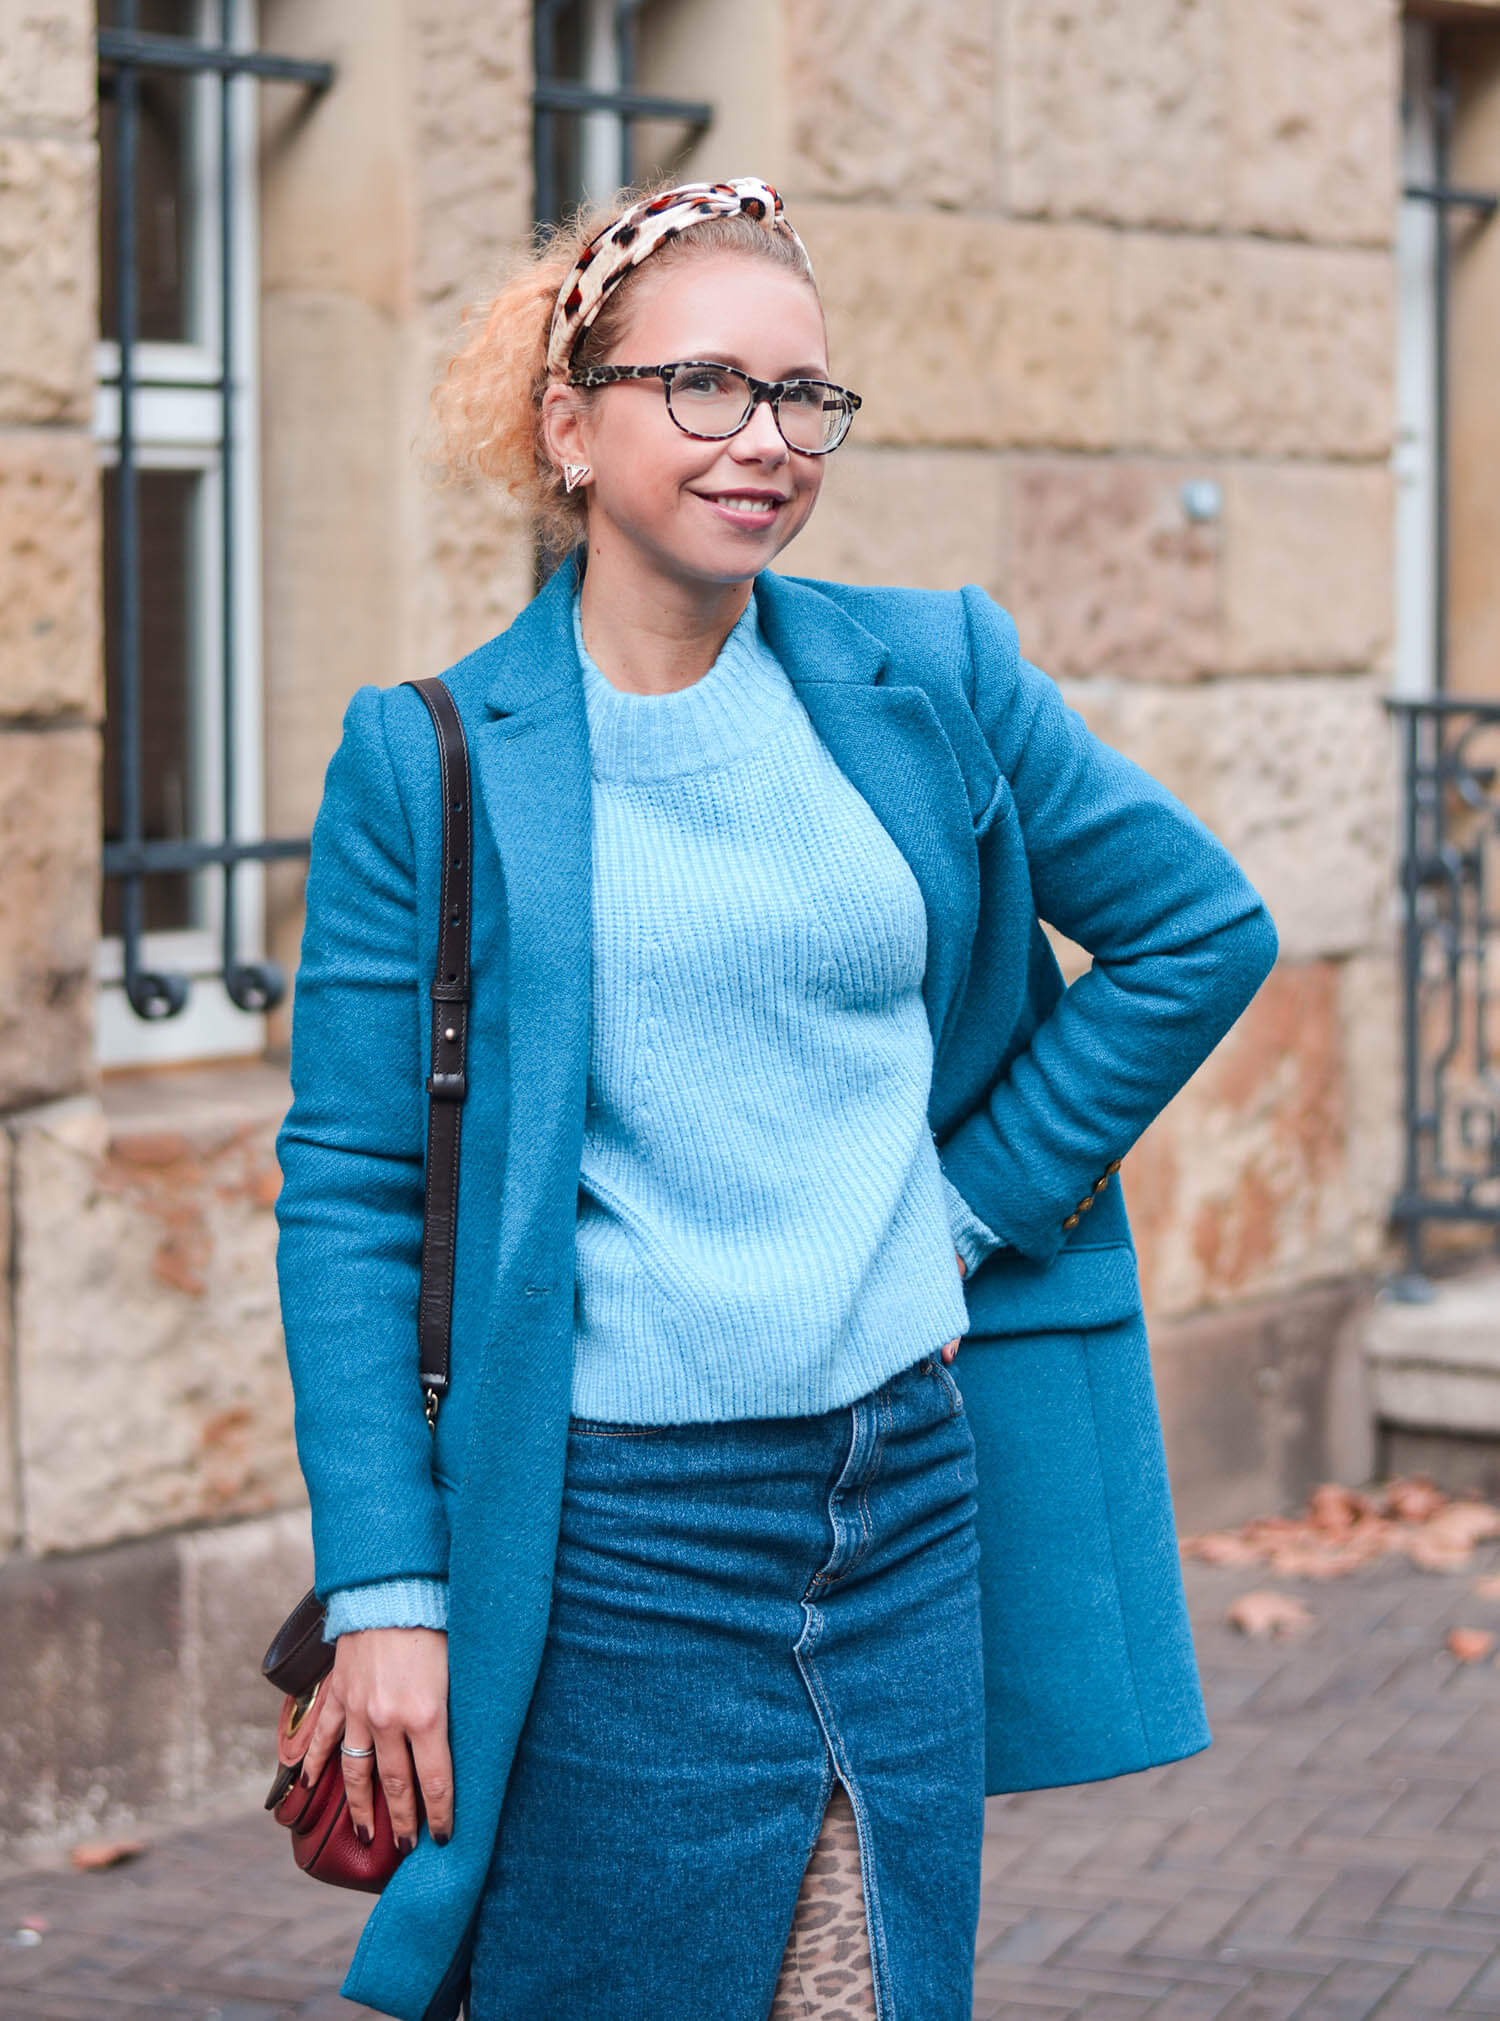 Petrol-Blue-meets-Leo-Print-Wool-Coat-Knit-Denim Skirt-Kationette-Winter-Outfit-Fashionblogger-Germany